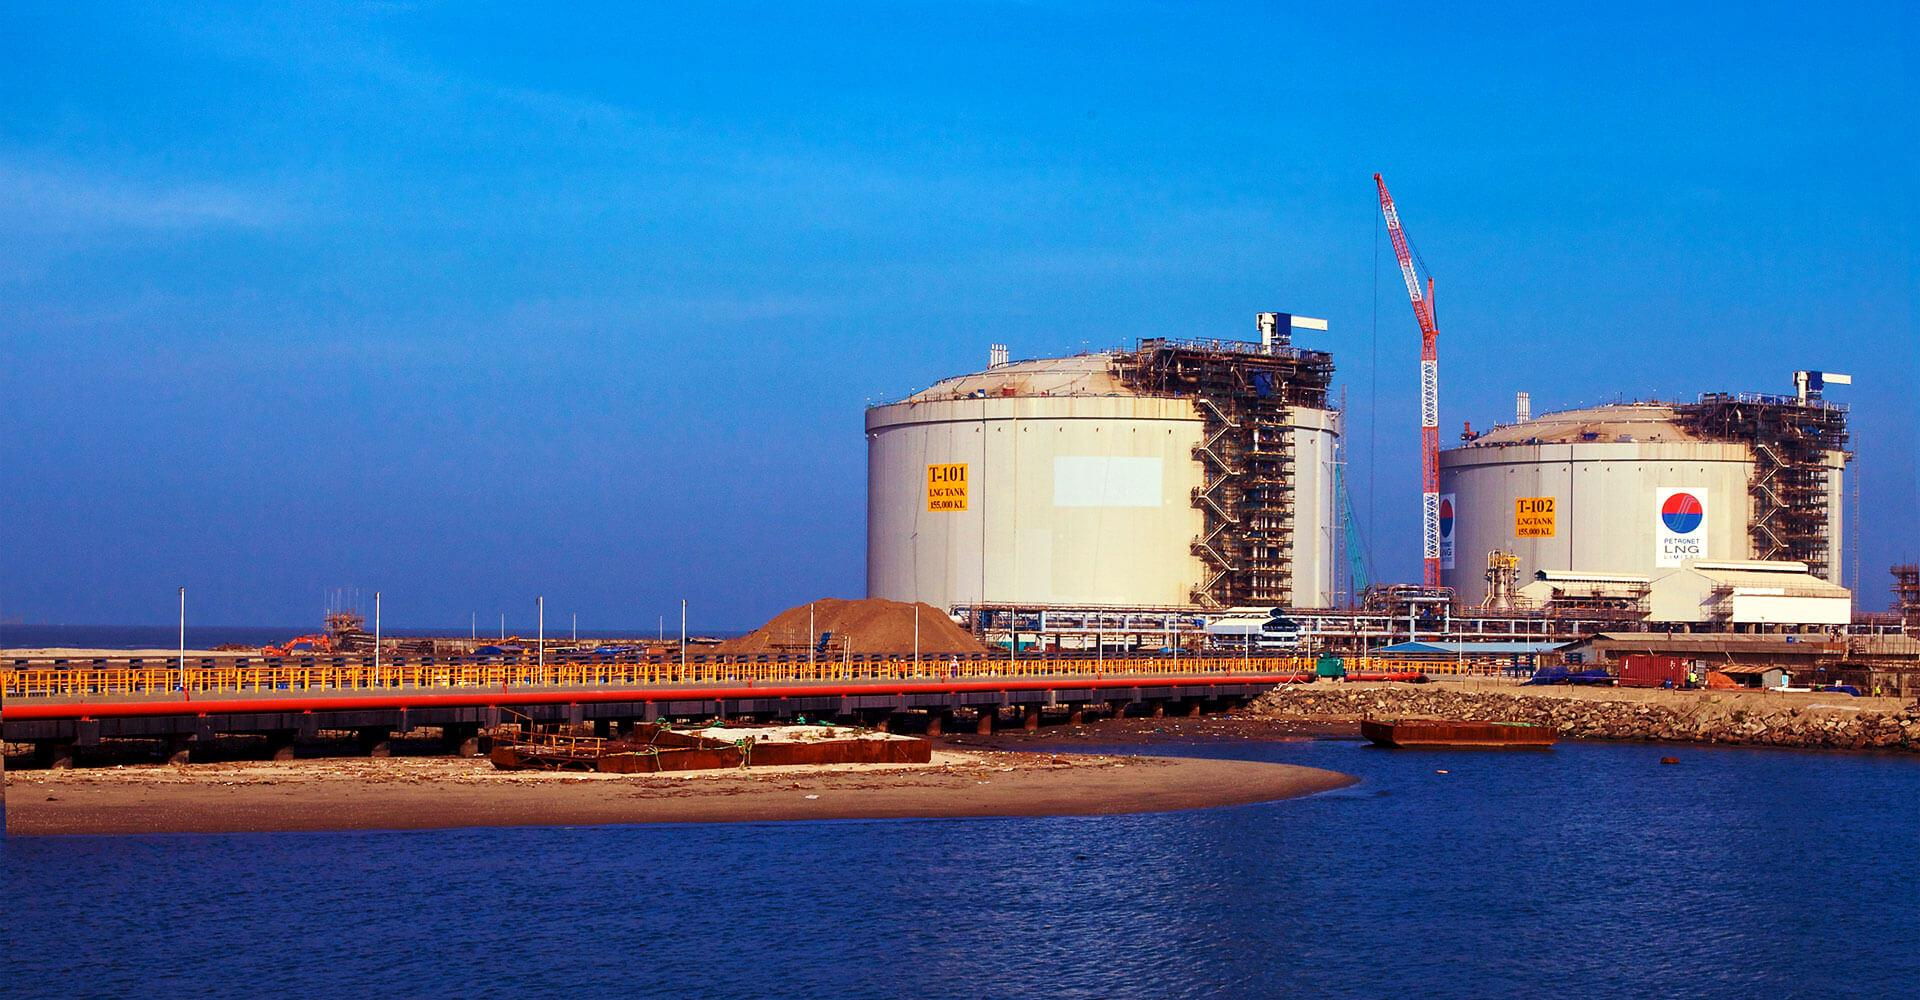 LNG Tanks, Kochi, India